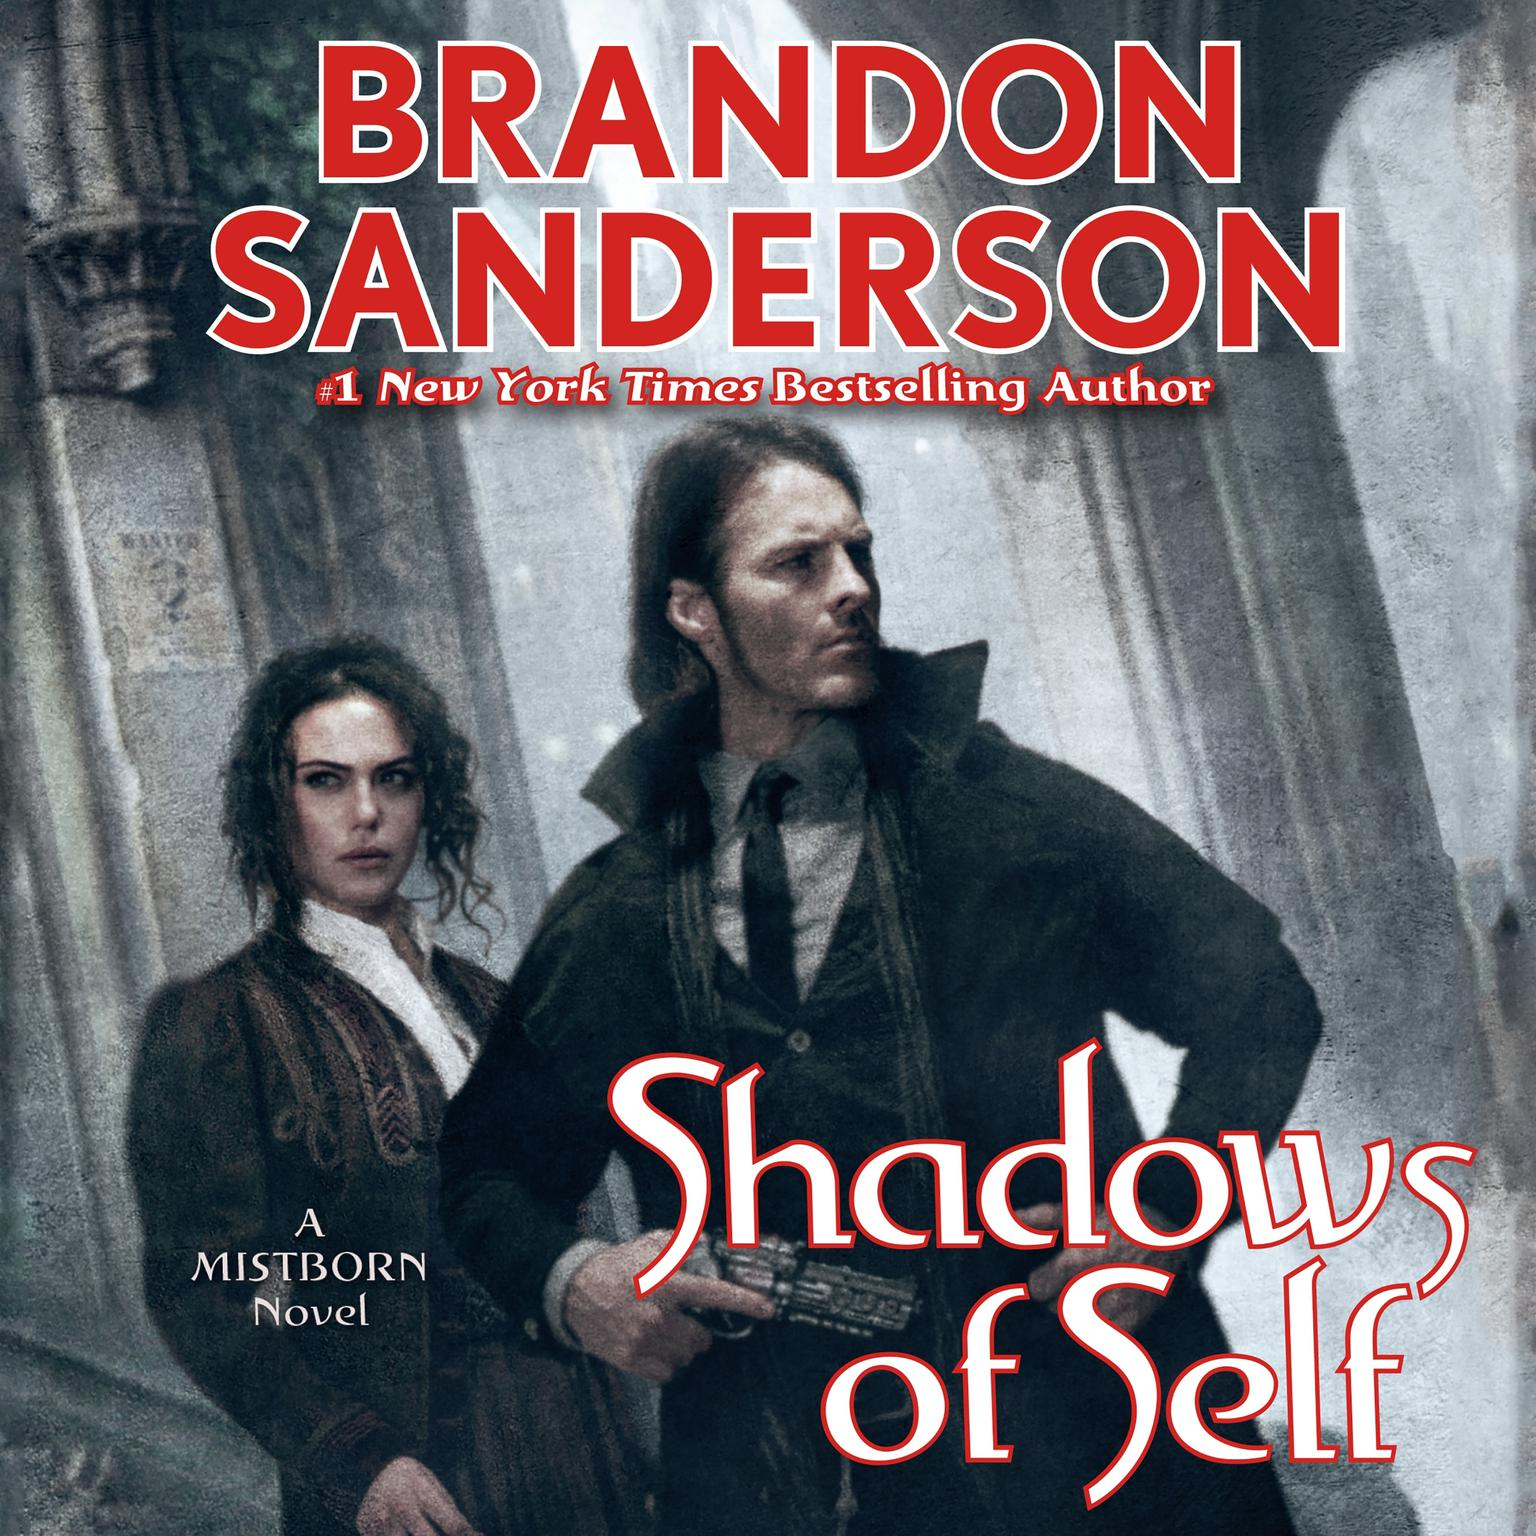 Printable Shadows of Self: A Mistborn Novel Audiobook Cover Art